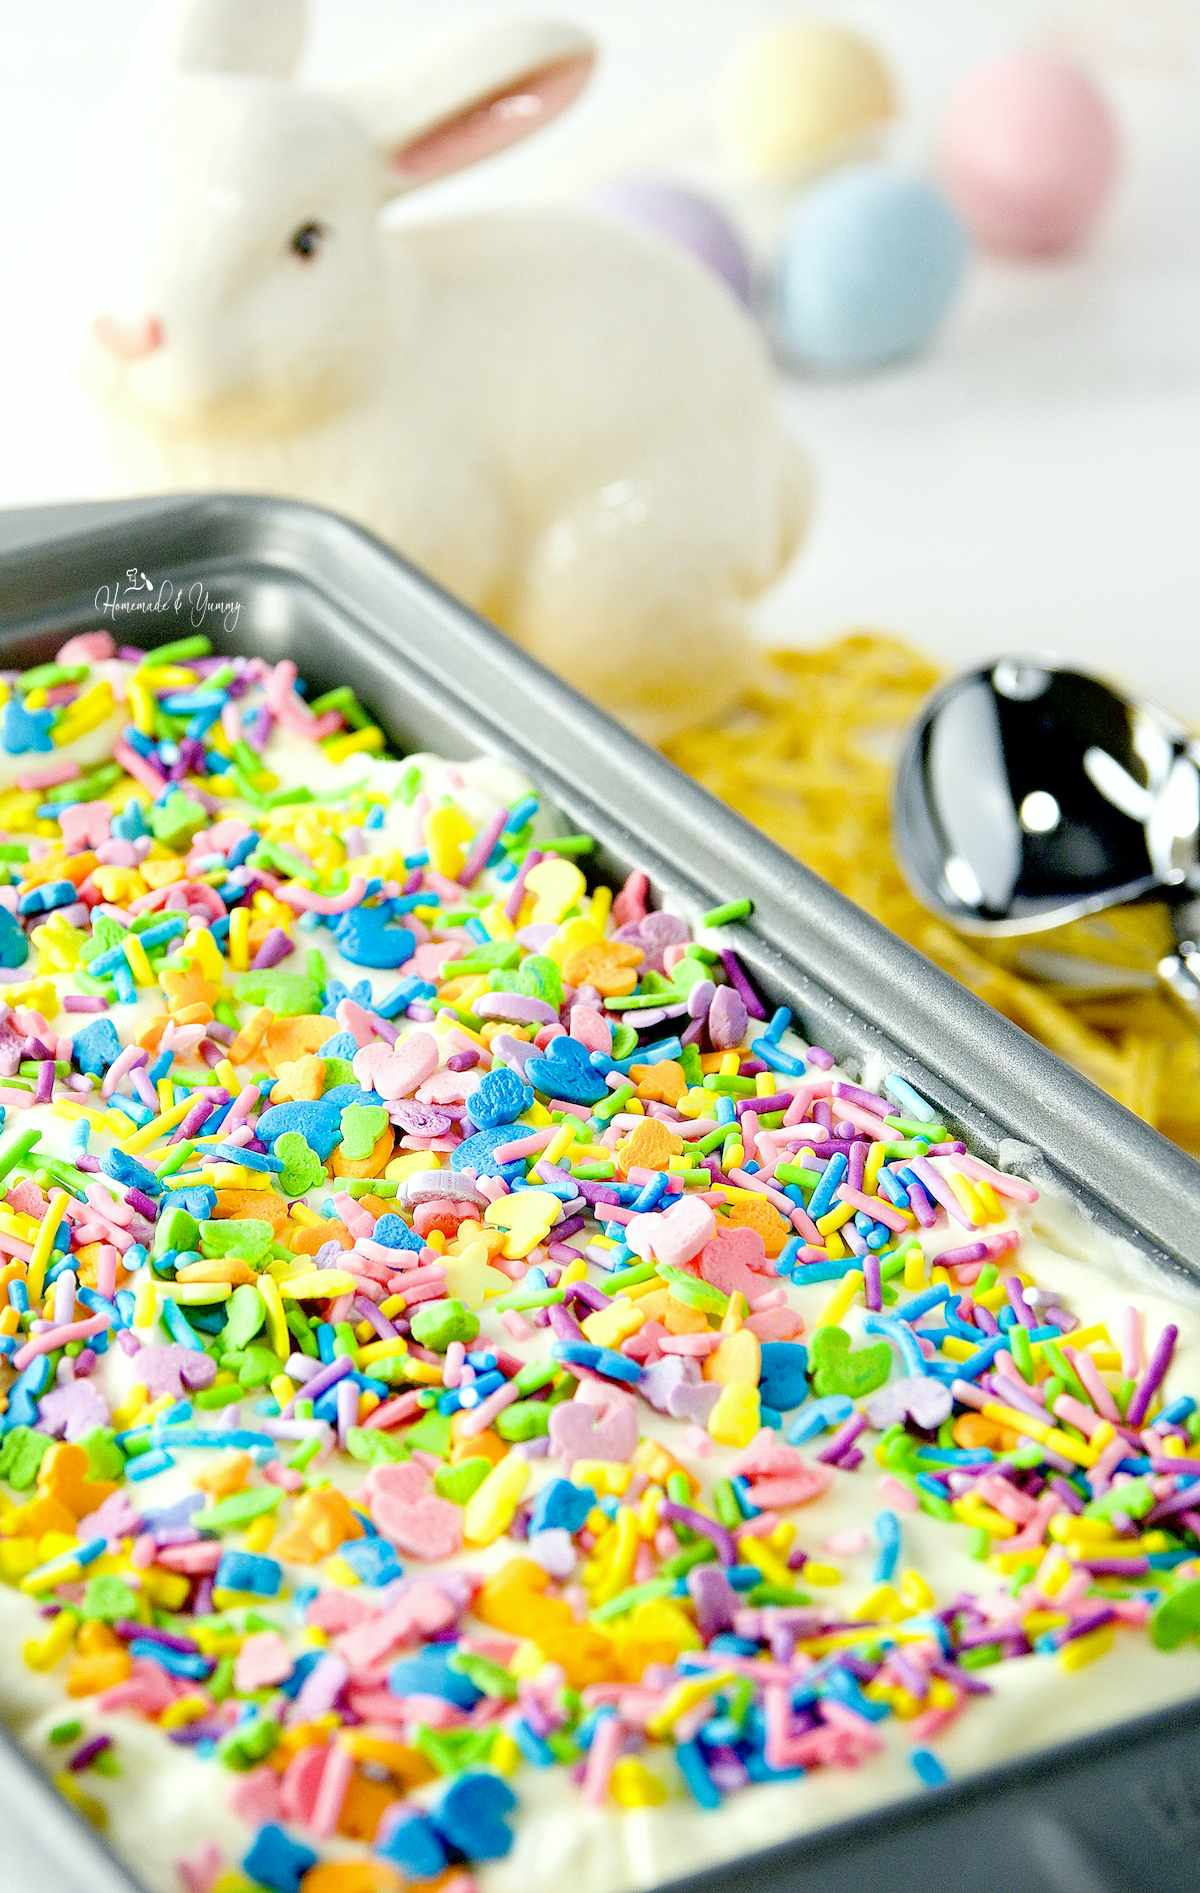 A container of lemon ice cream topped with Easter sprinkles.